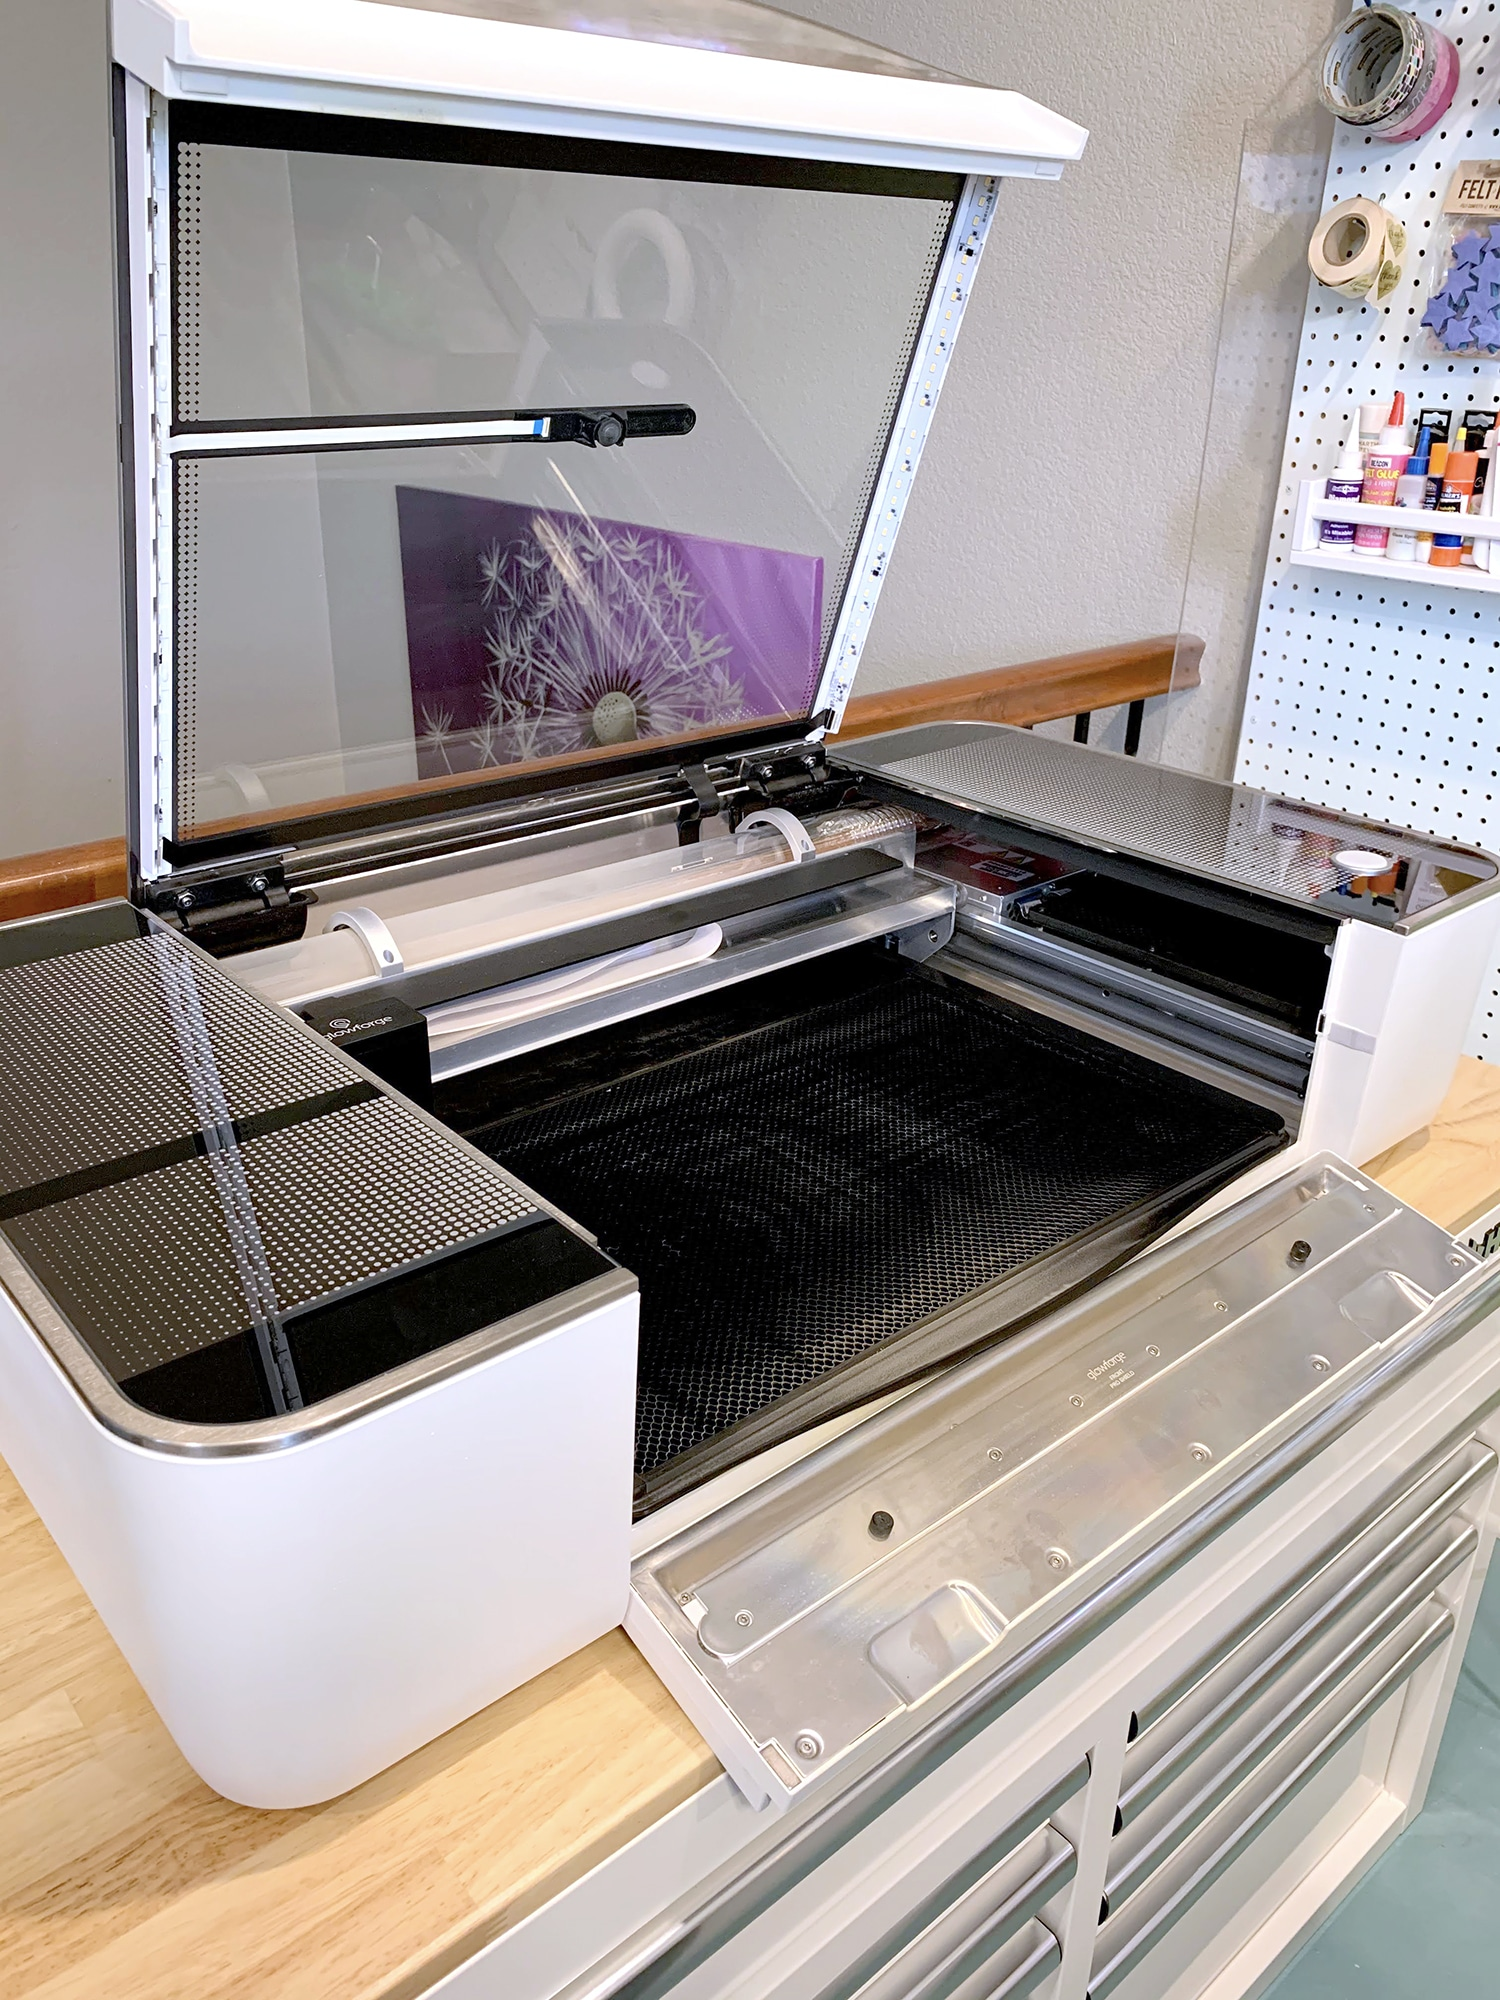 Glowforge Pro with open top lid and front